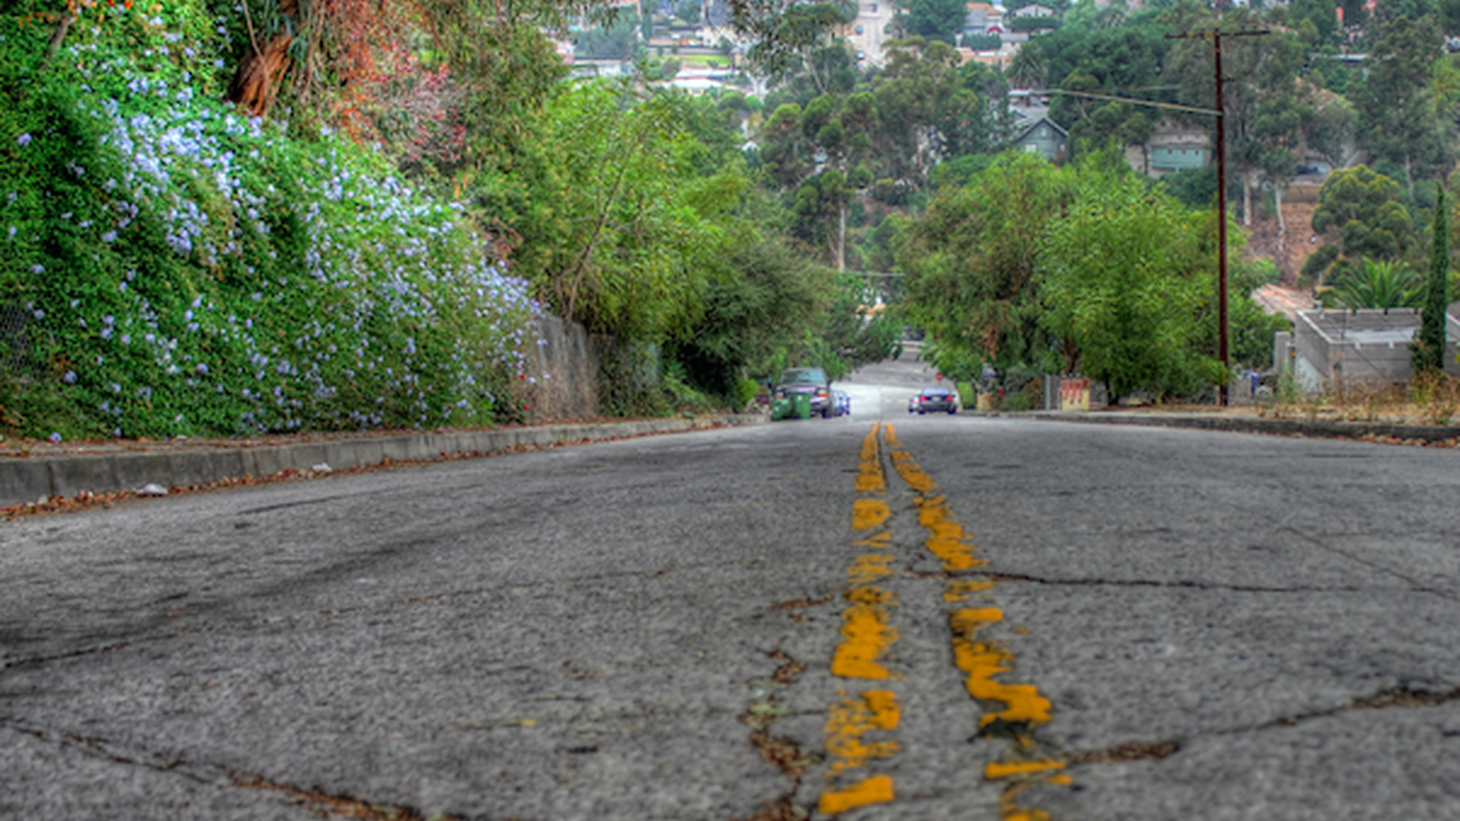 Baxter St. in Echo Park is steep and scary. Daredevil skateboarders take it on, and some unsuspecting drivers are sent there by Waze. Residents are fed up with the traffic and accidents. They met with the city to try to come up with solutions.